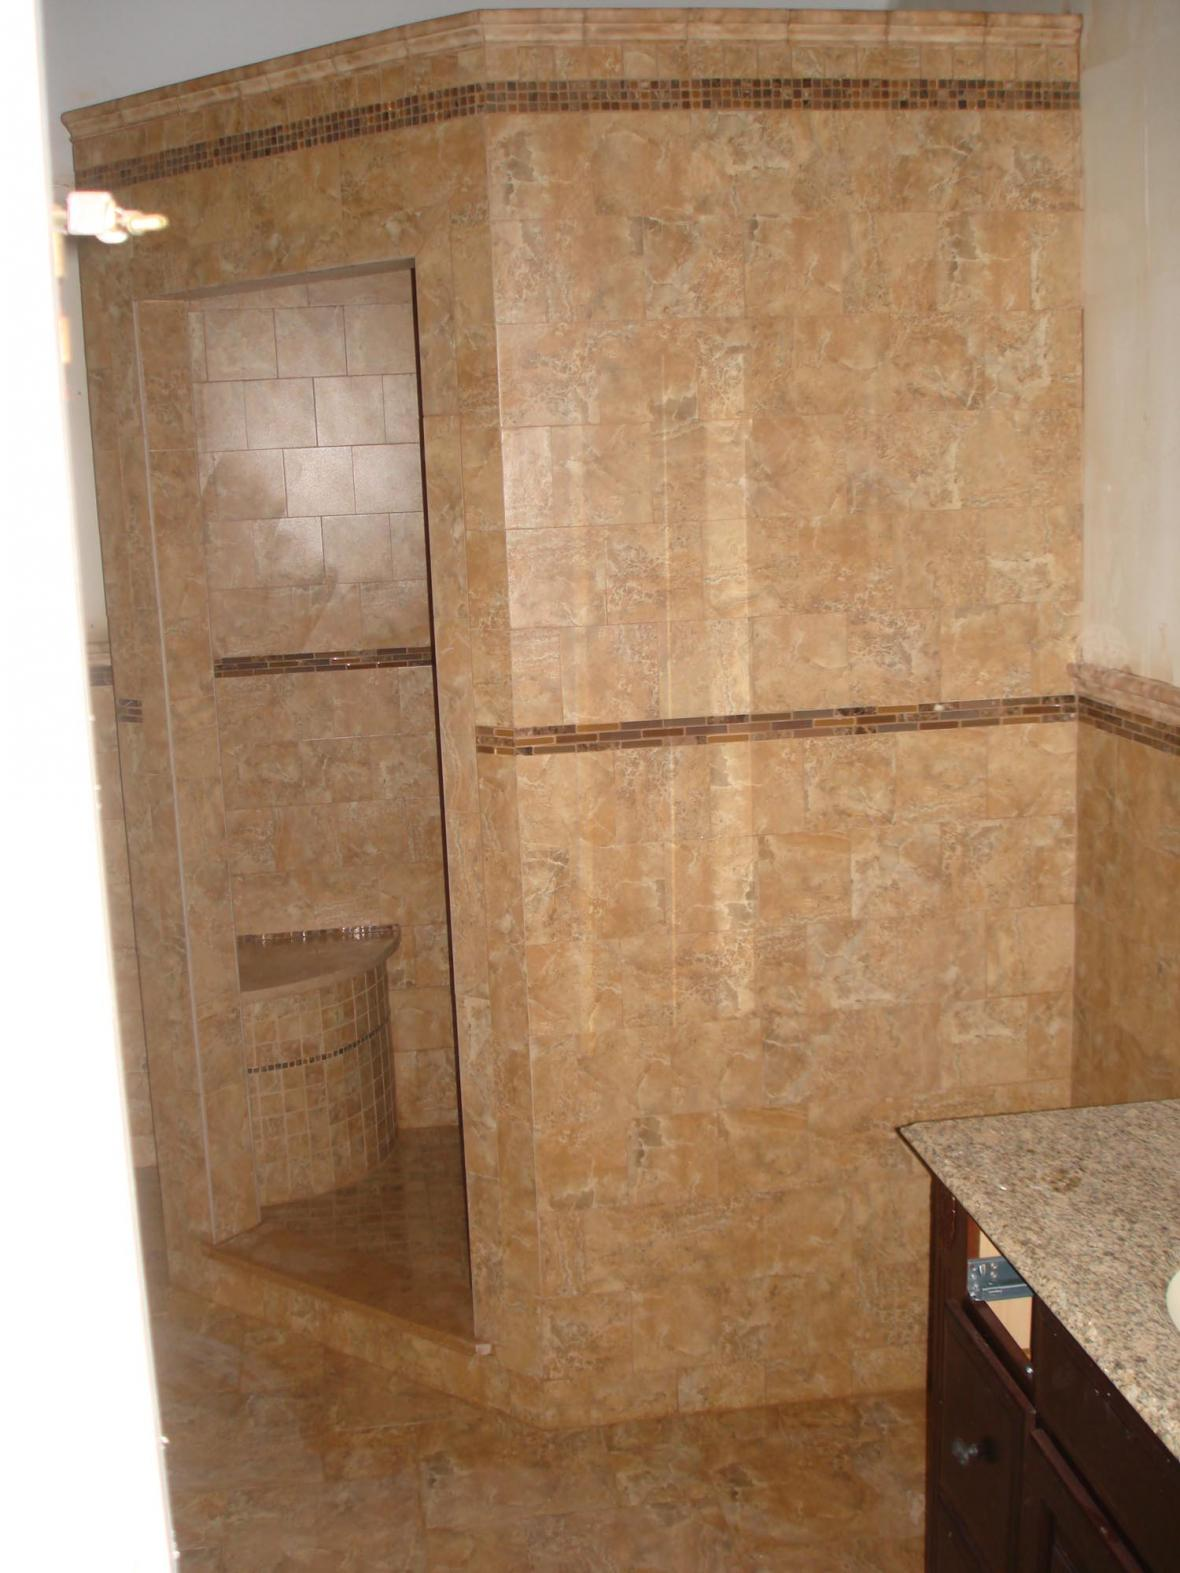 New tile shower in master bath | New Jersey Custom Tile